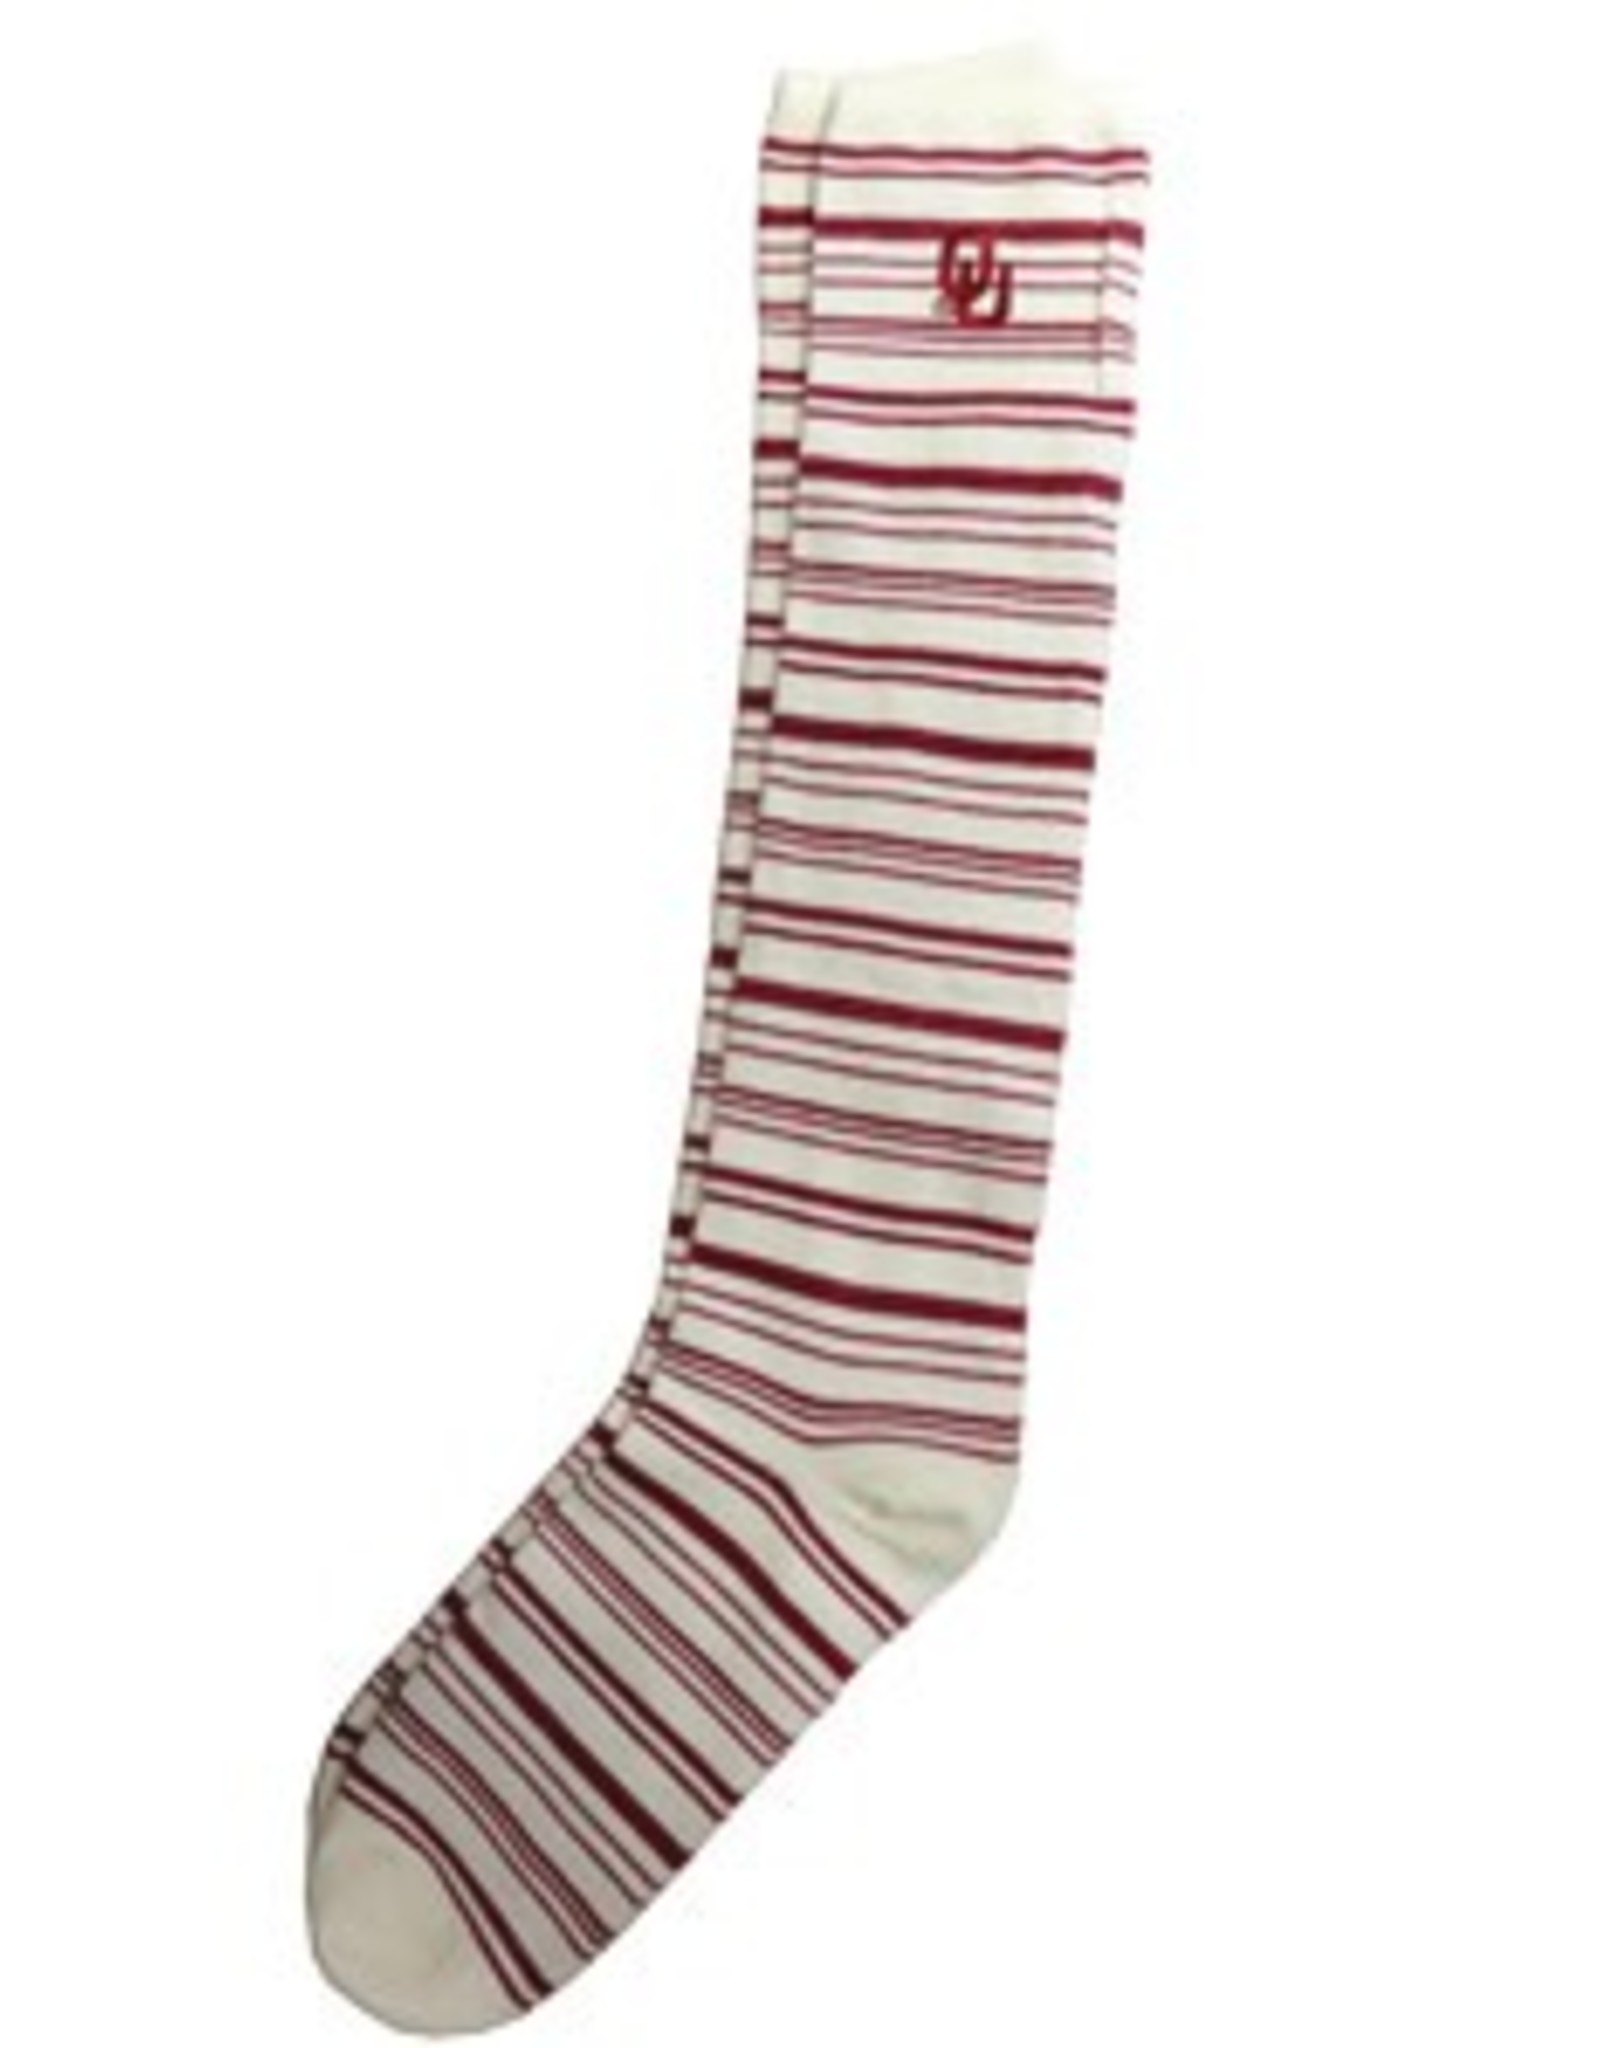 Two Feet Ahead Women's OU Knee High Crimson & White Stripe Sock